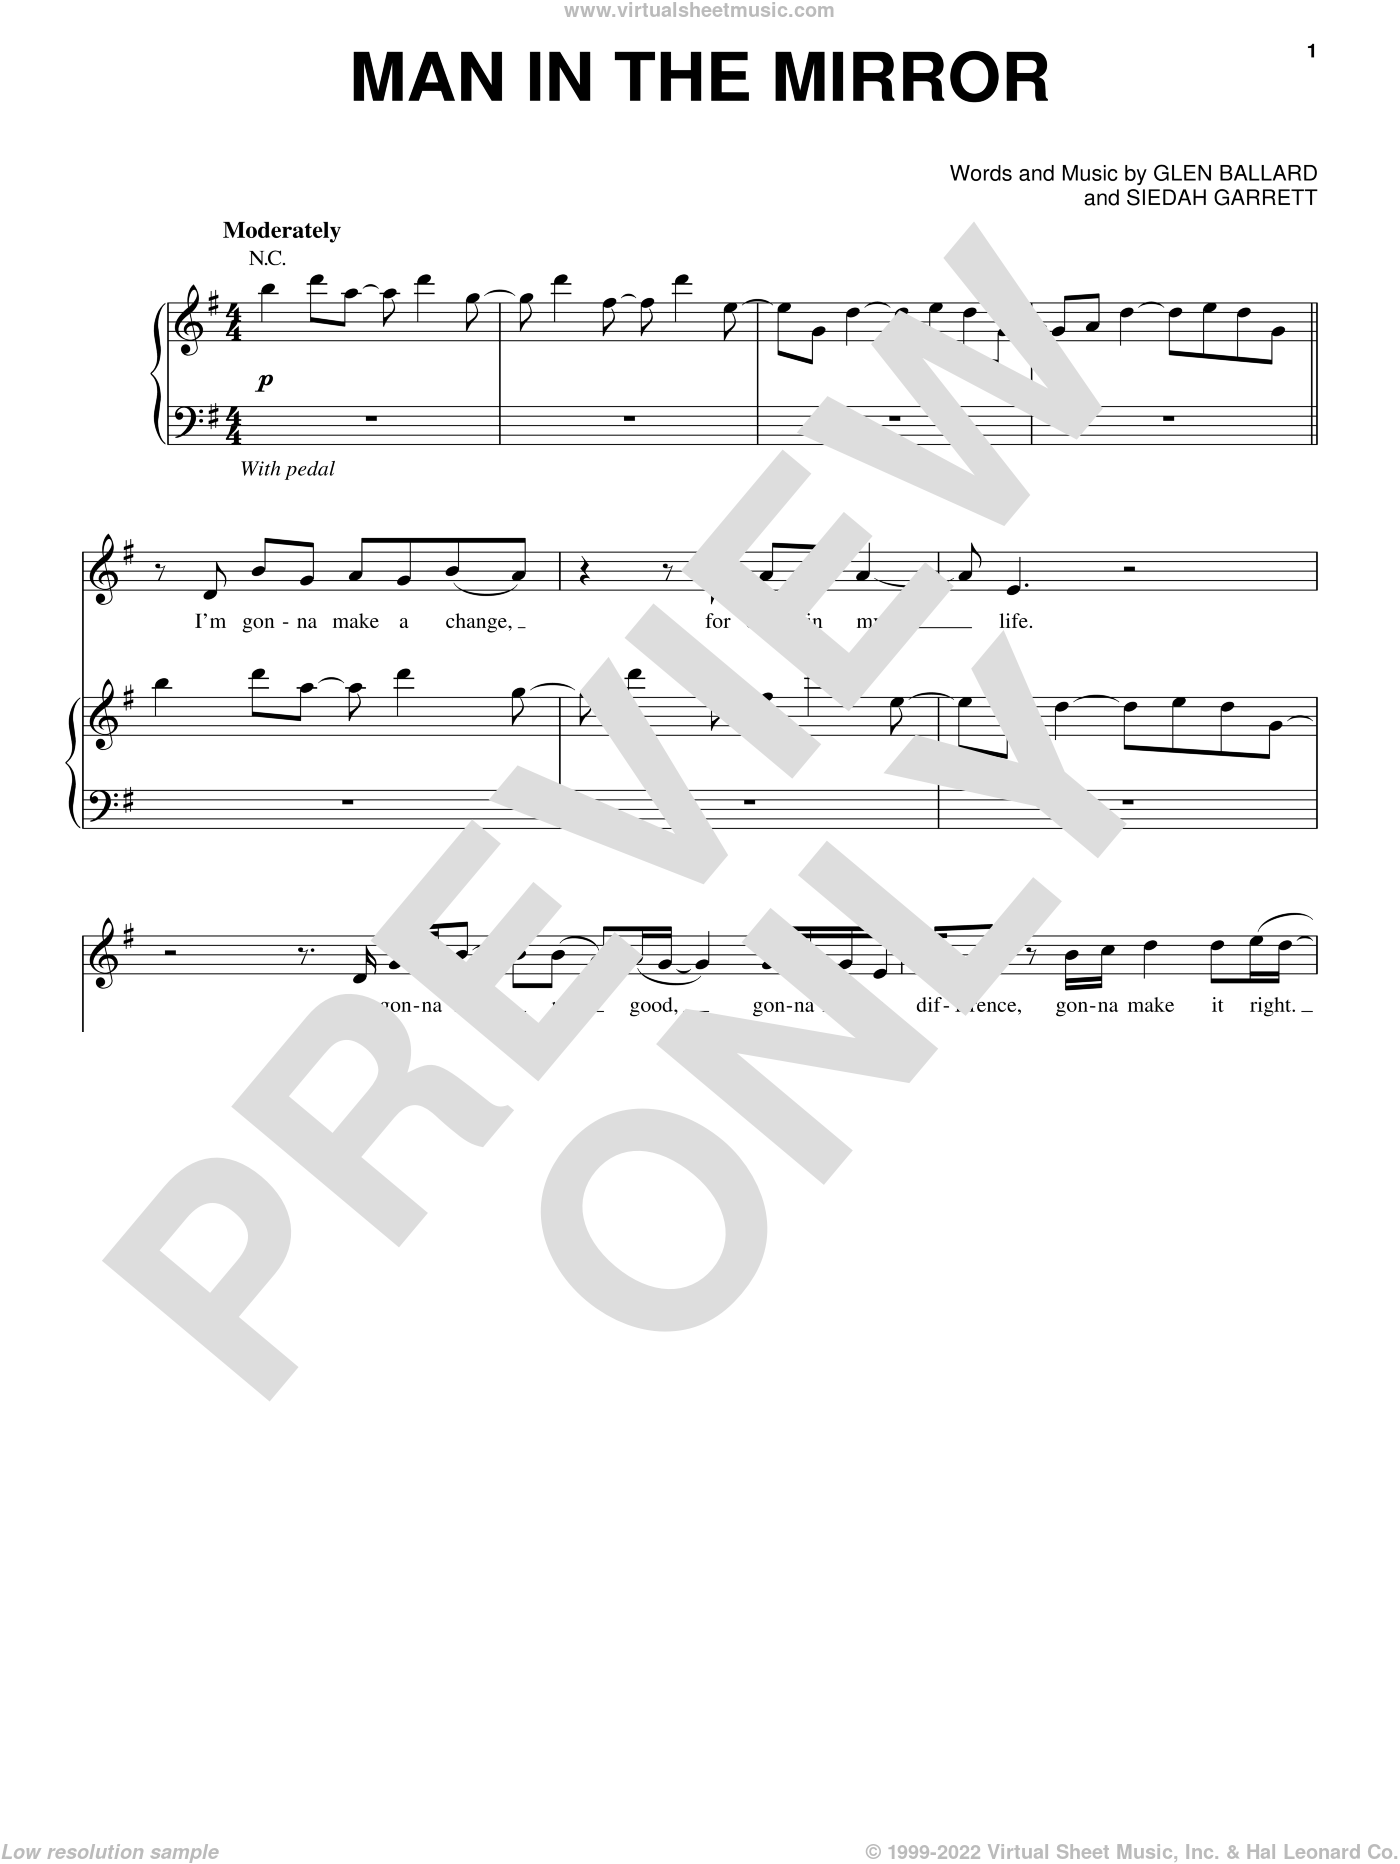 Man In The Mirror sheet music for voice, piano or guitar by Michael Jackson, Glen Ballard and Siedah Garrett, intermediate skill level